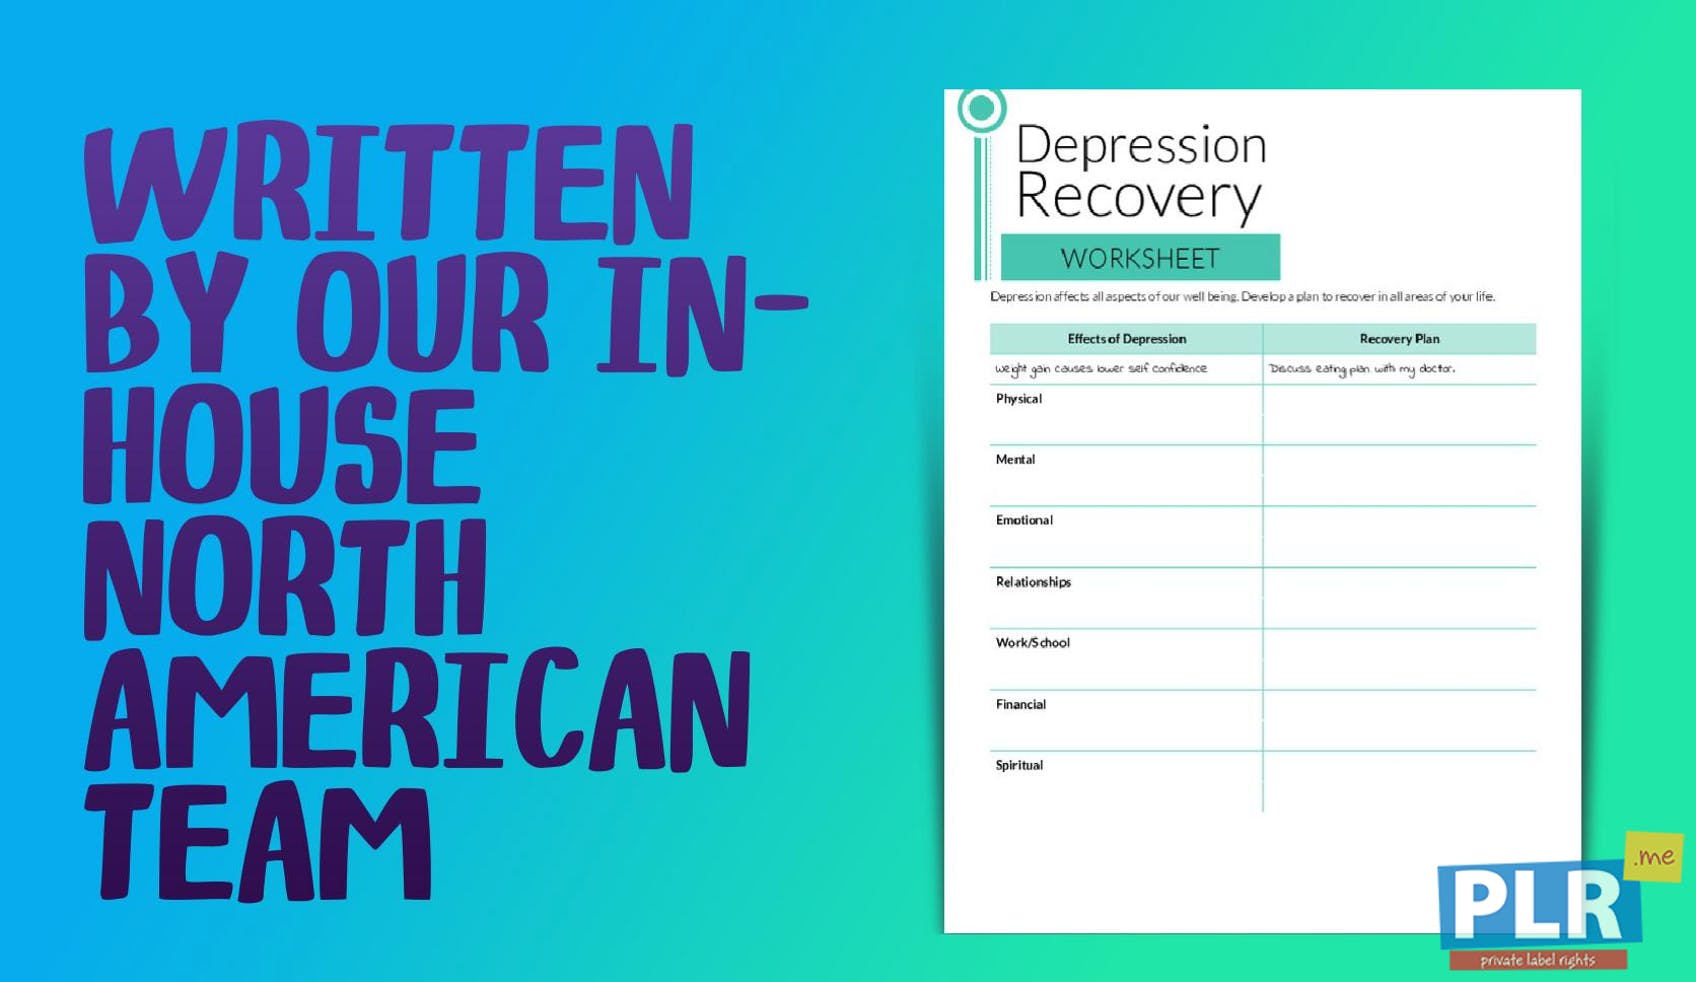 PLR Worksheets - Depression Recovery Worksheet - PLR.me